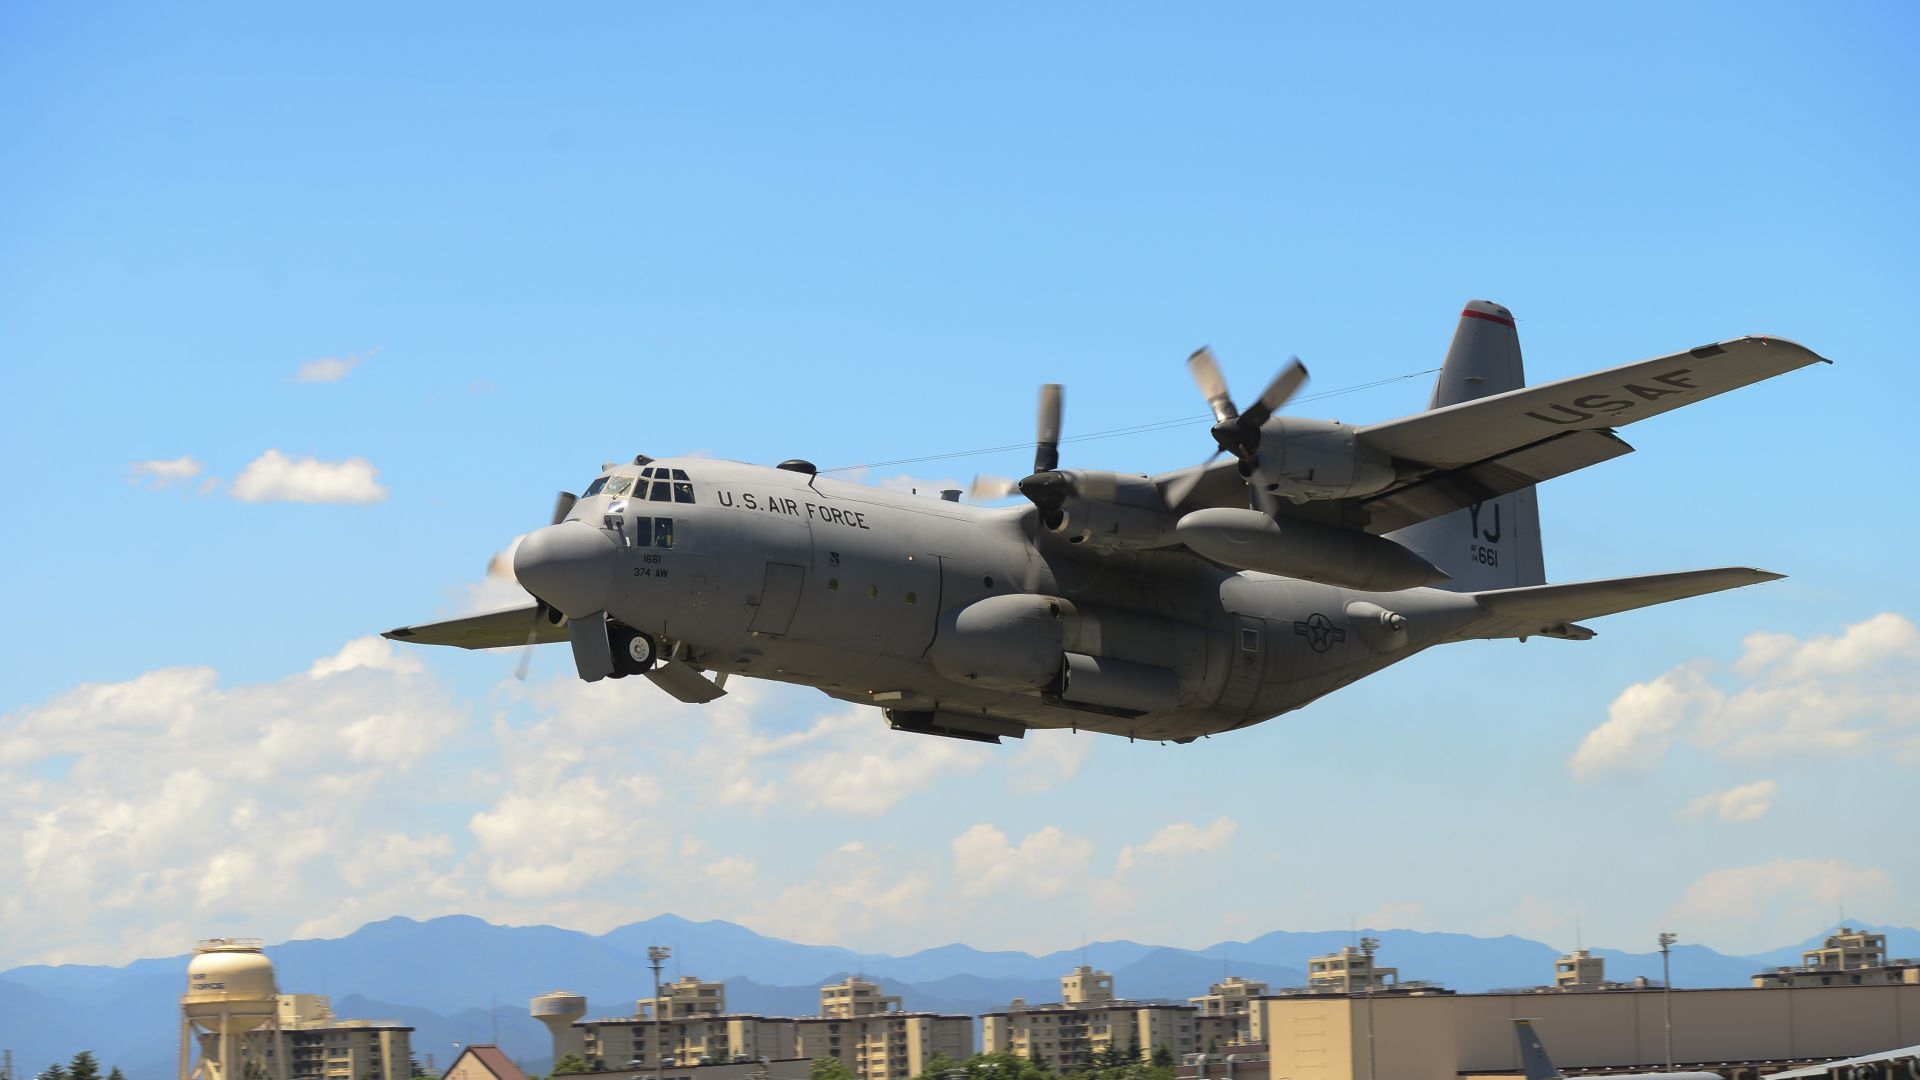 C 130 Military Transport Aircraft ... Military / Recent:...